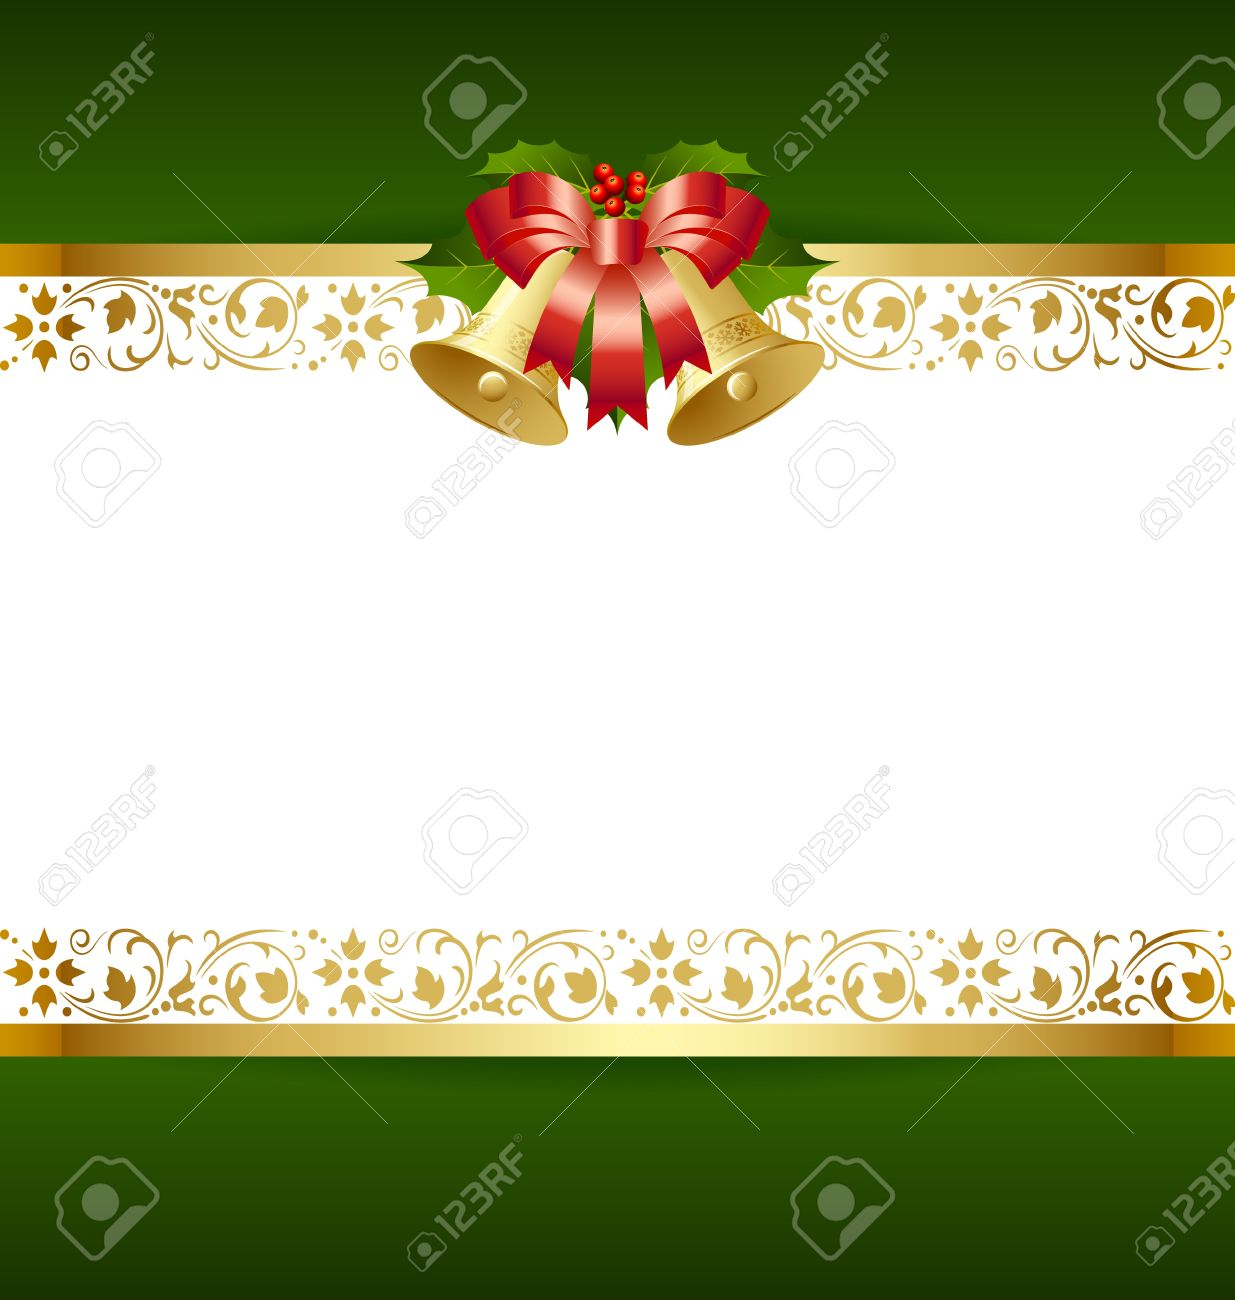 Stylized Christmas Card Template With Decoration Royalty Free ...